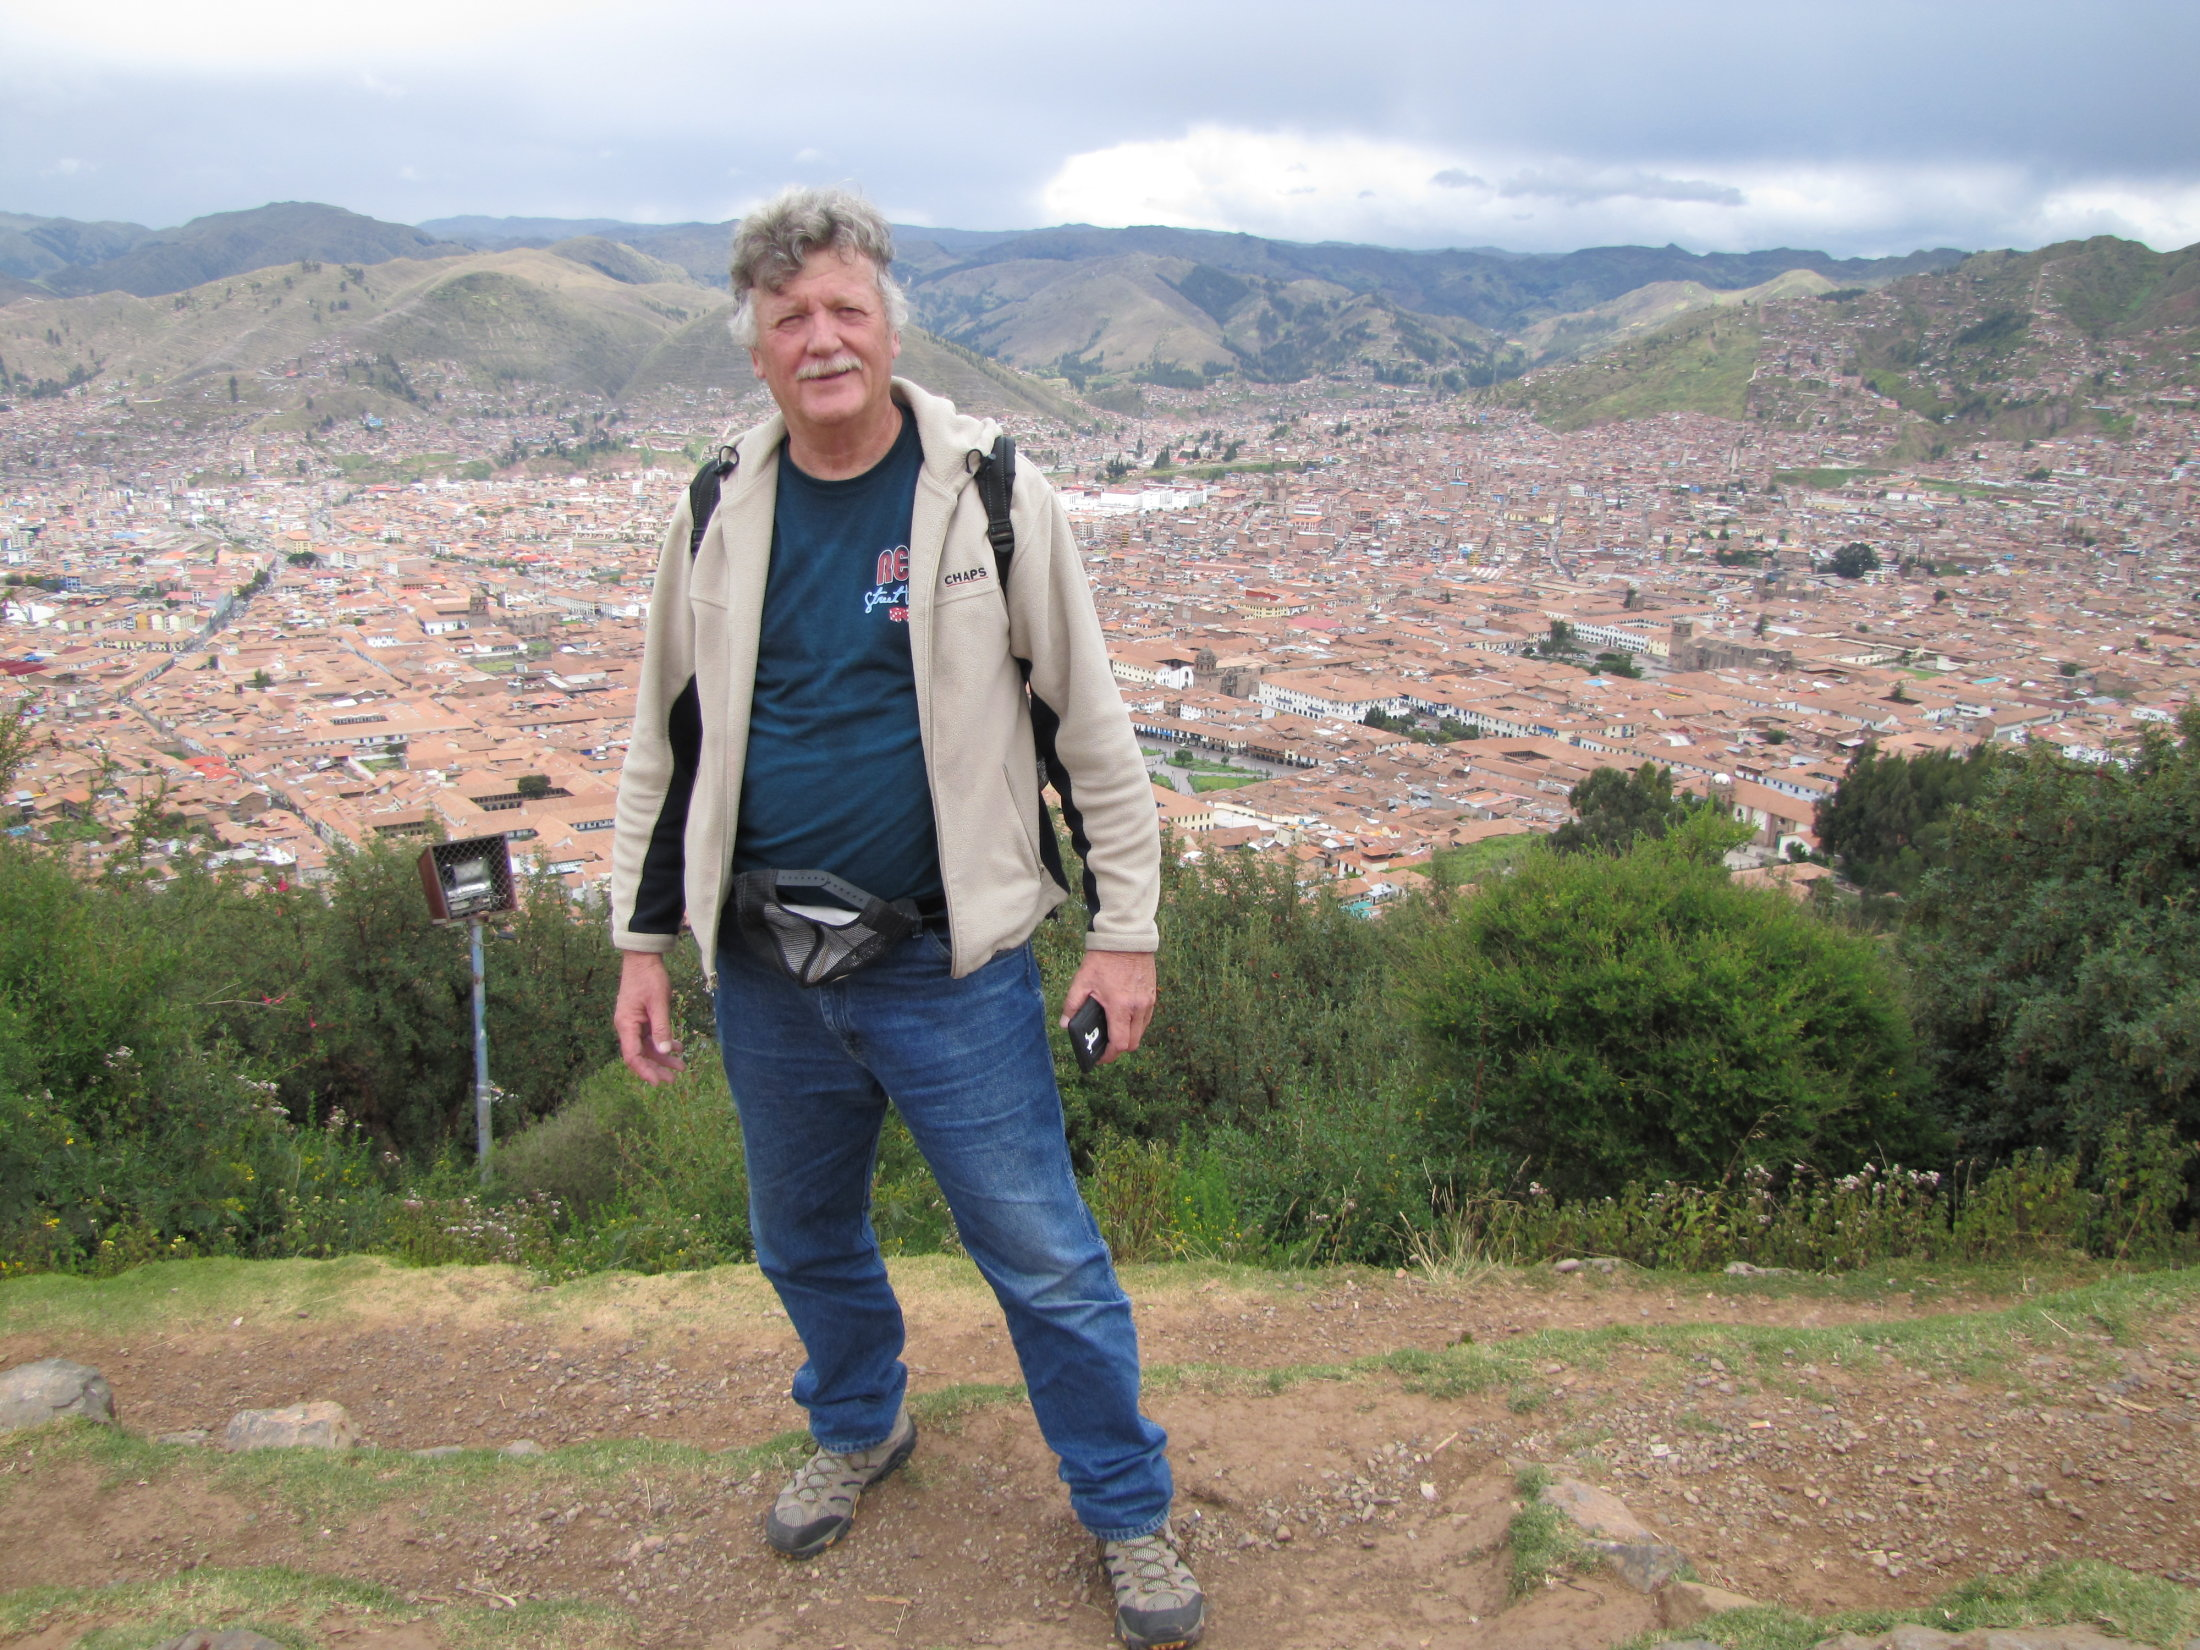 Bob with Cusco in the background